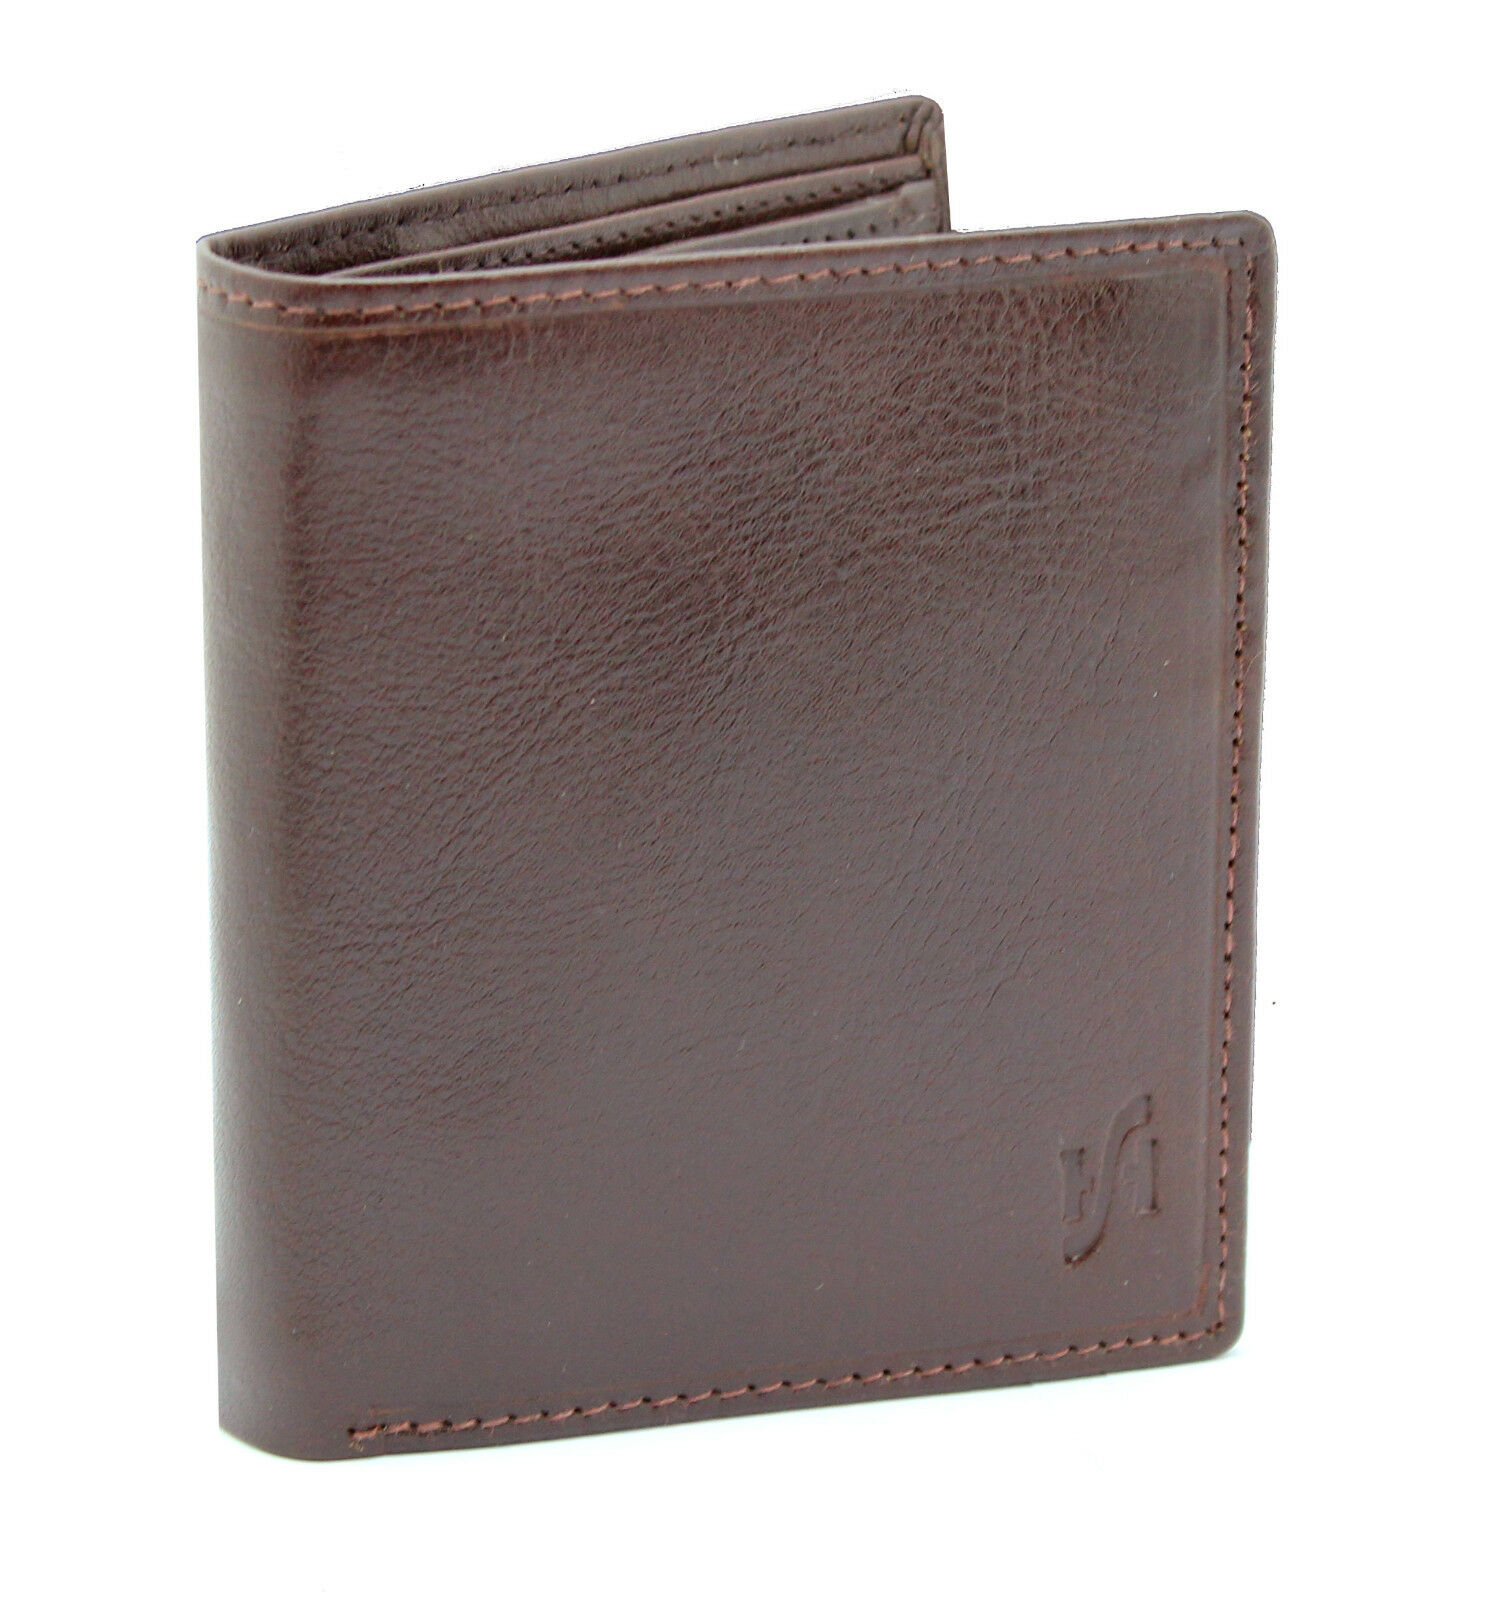 Mens RFID Blocking Small VT Leather Wallet Brown